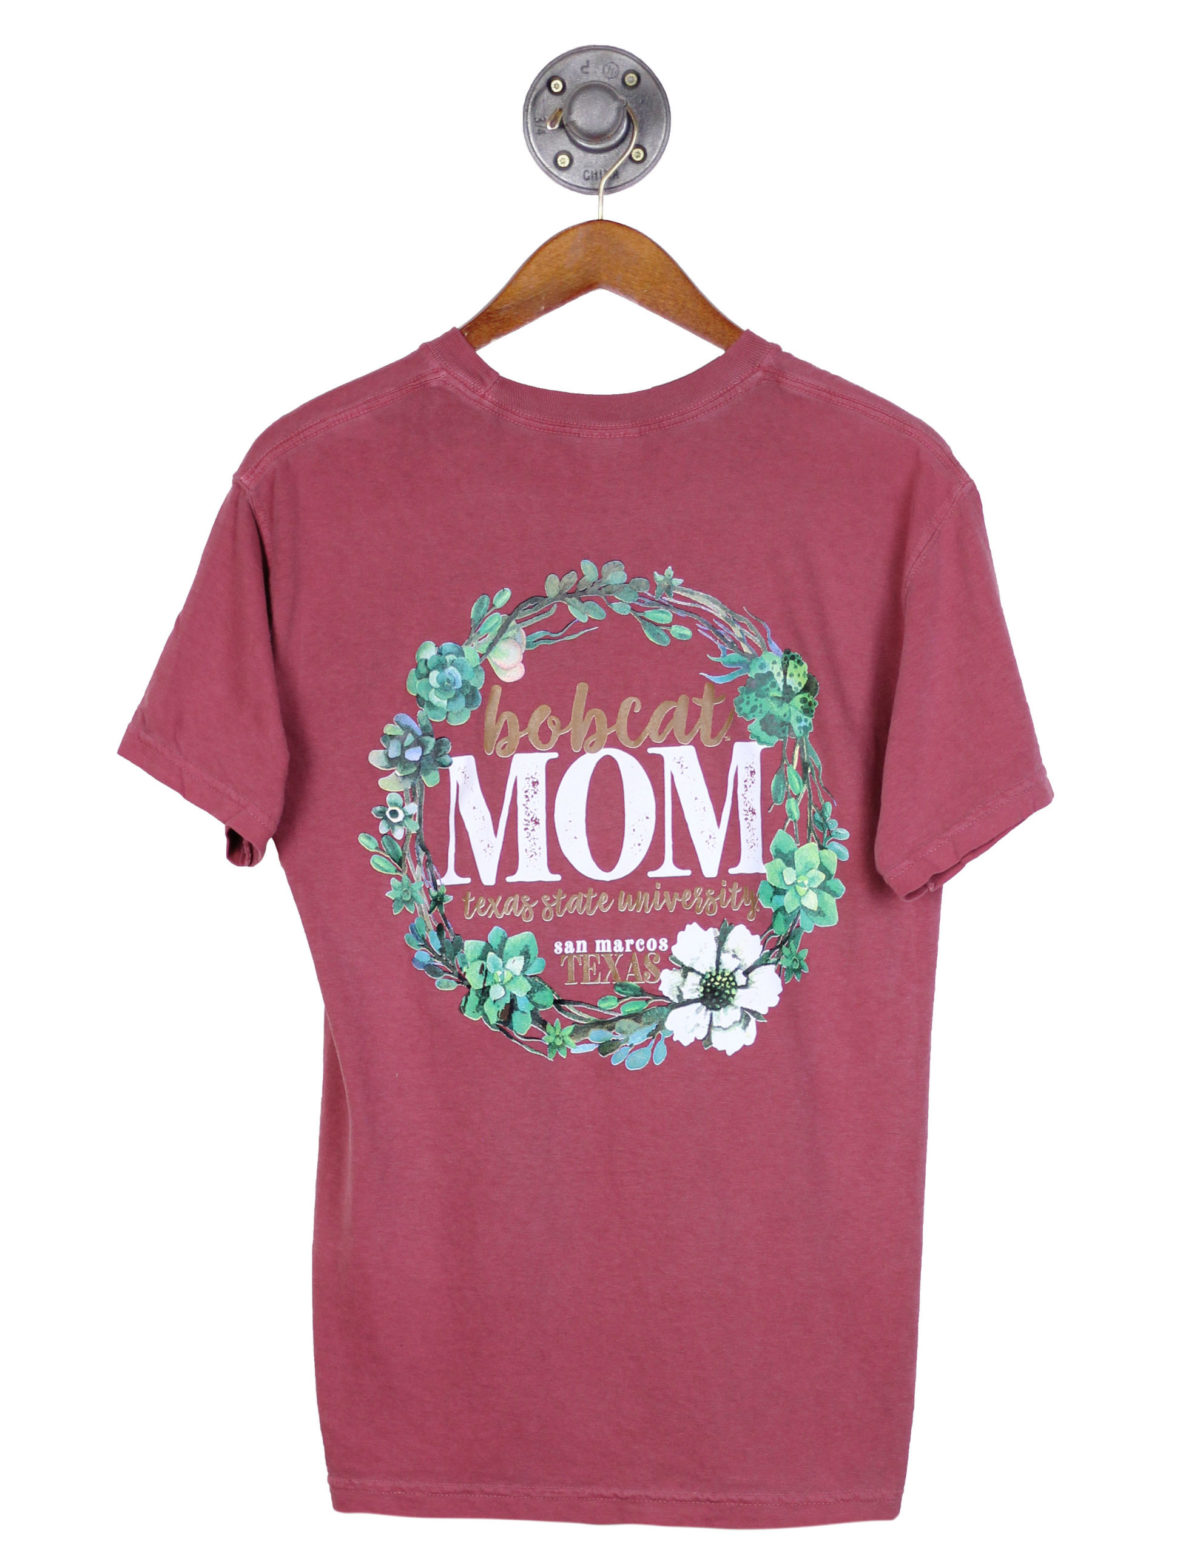 TXST Texas State floral Bobcat mom short sleeve Barefoot Campus Outfitter